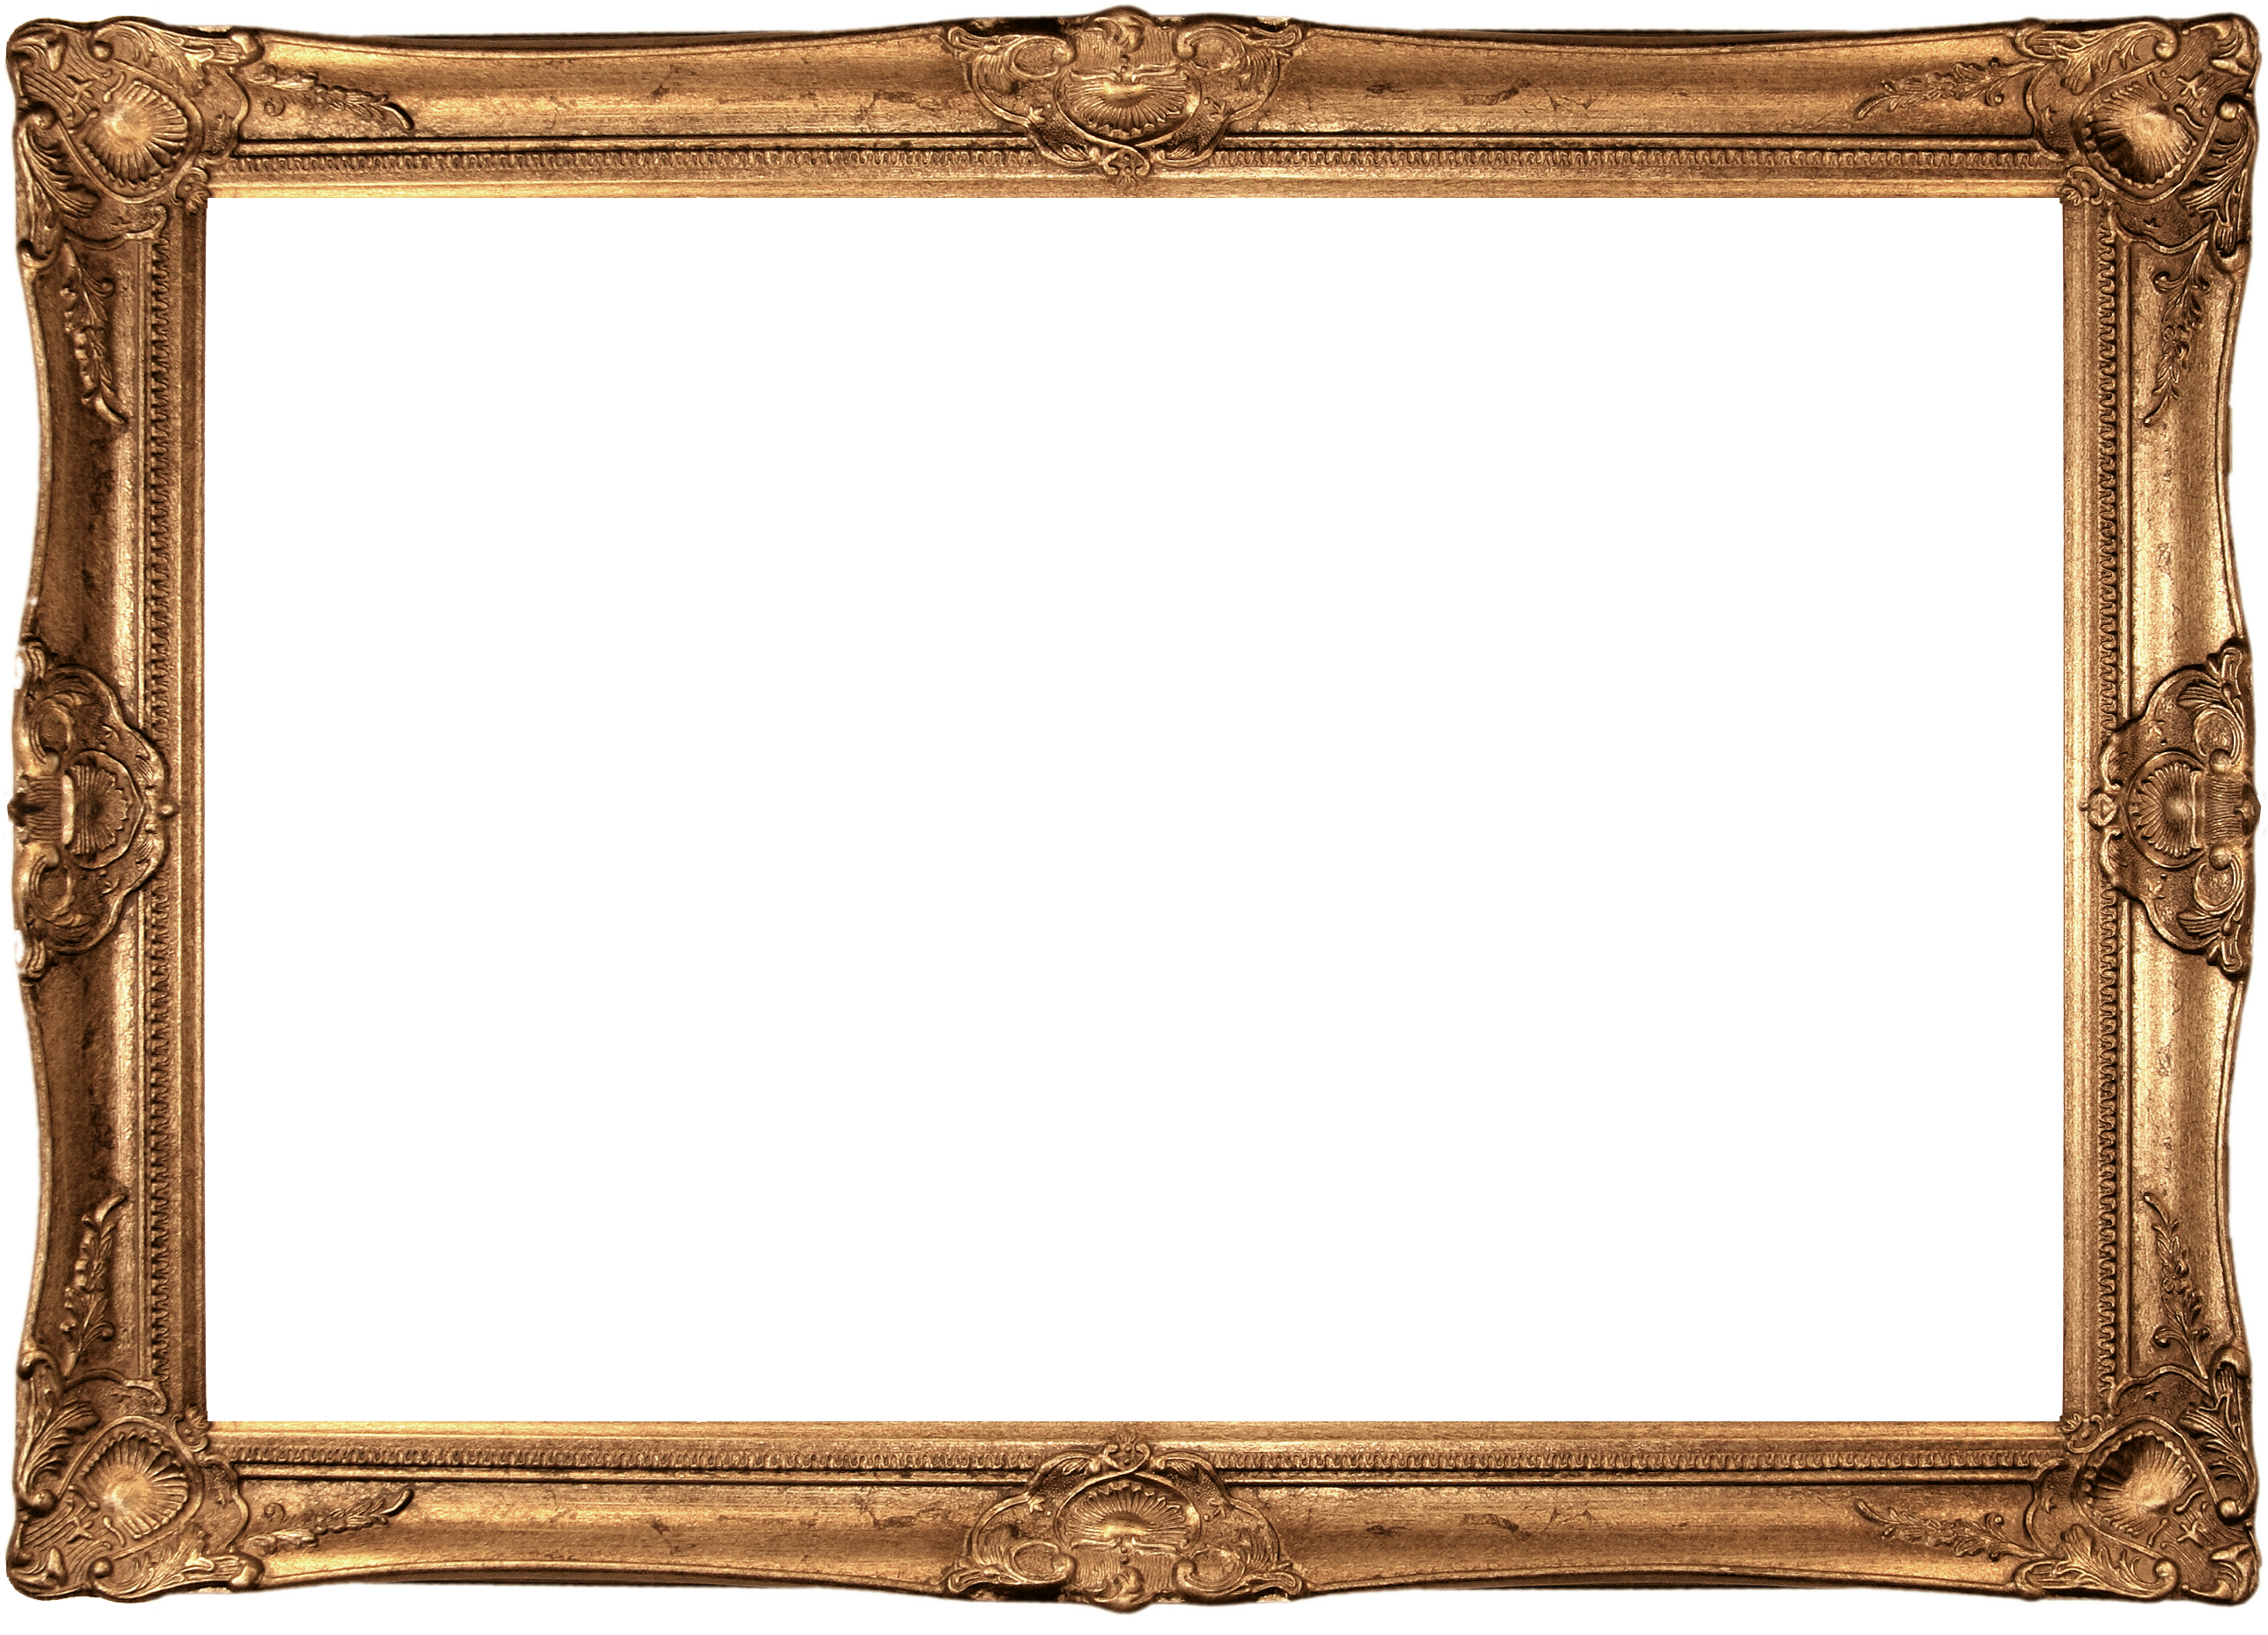 renaissance gold 1114 frame for wall decoration ideas 1114 black picture frame frames 1114 wall frame collage standard frame sizes michaels michaels